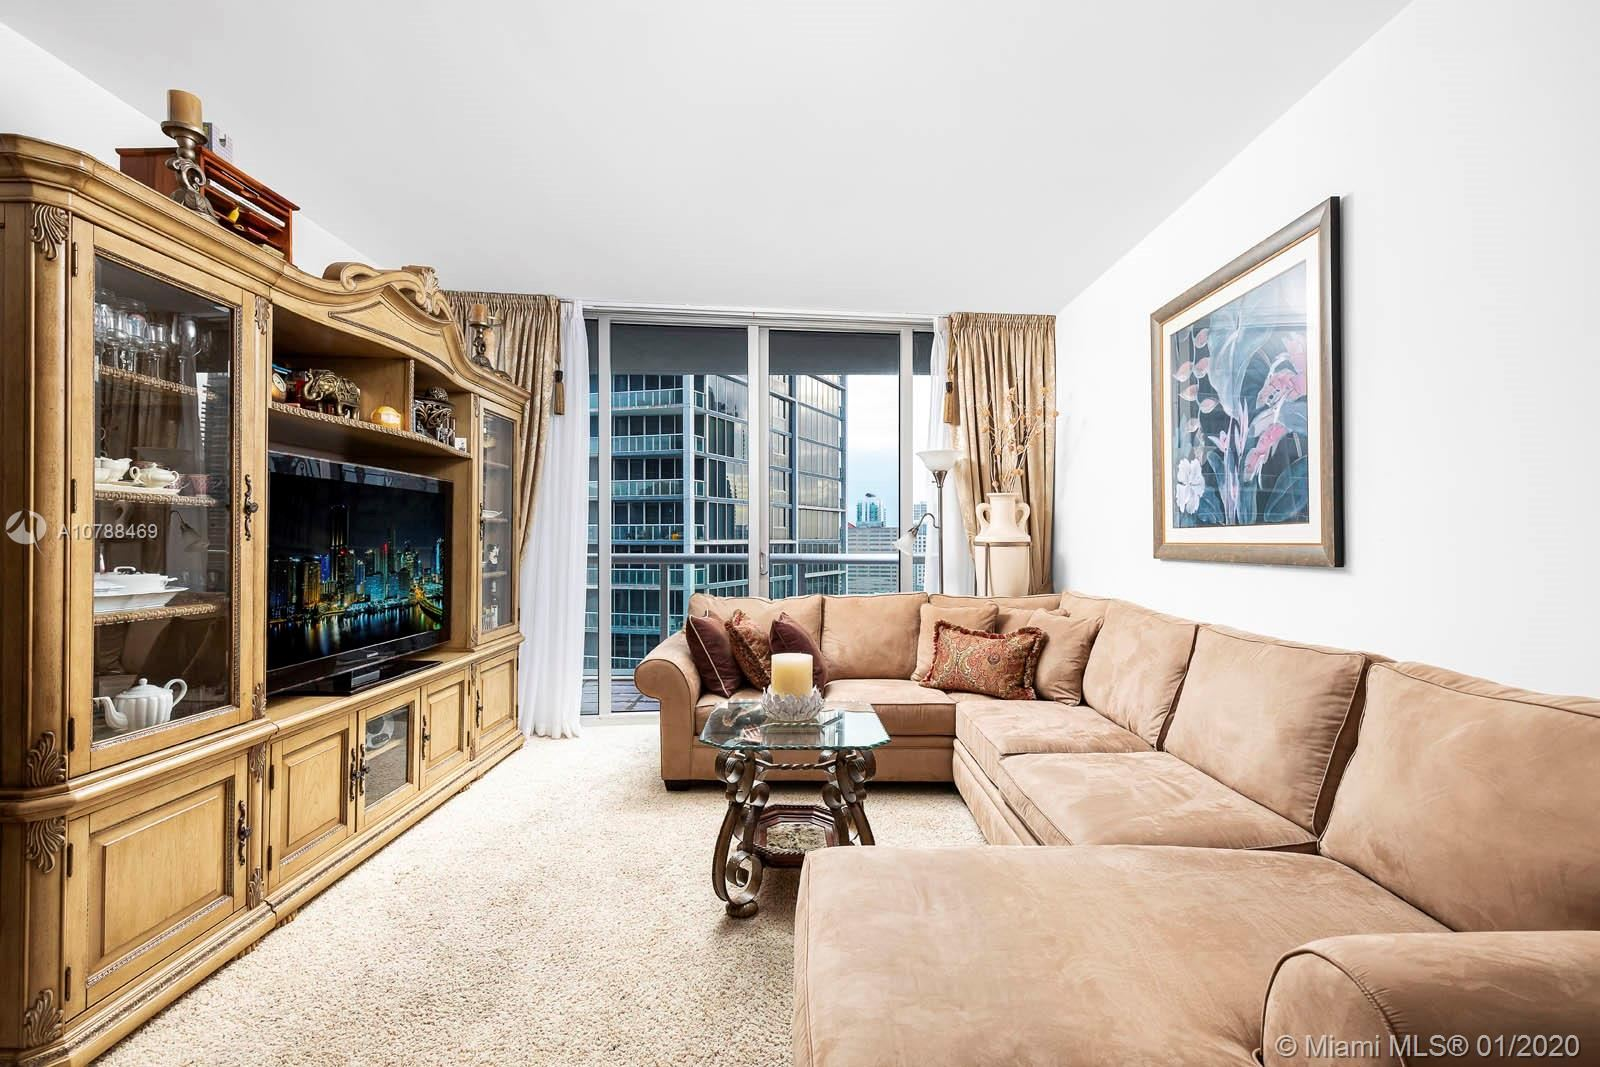 475 Brickell Ave #3213, Miami, FL 33131 - #: A10788469